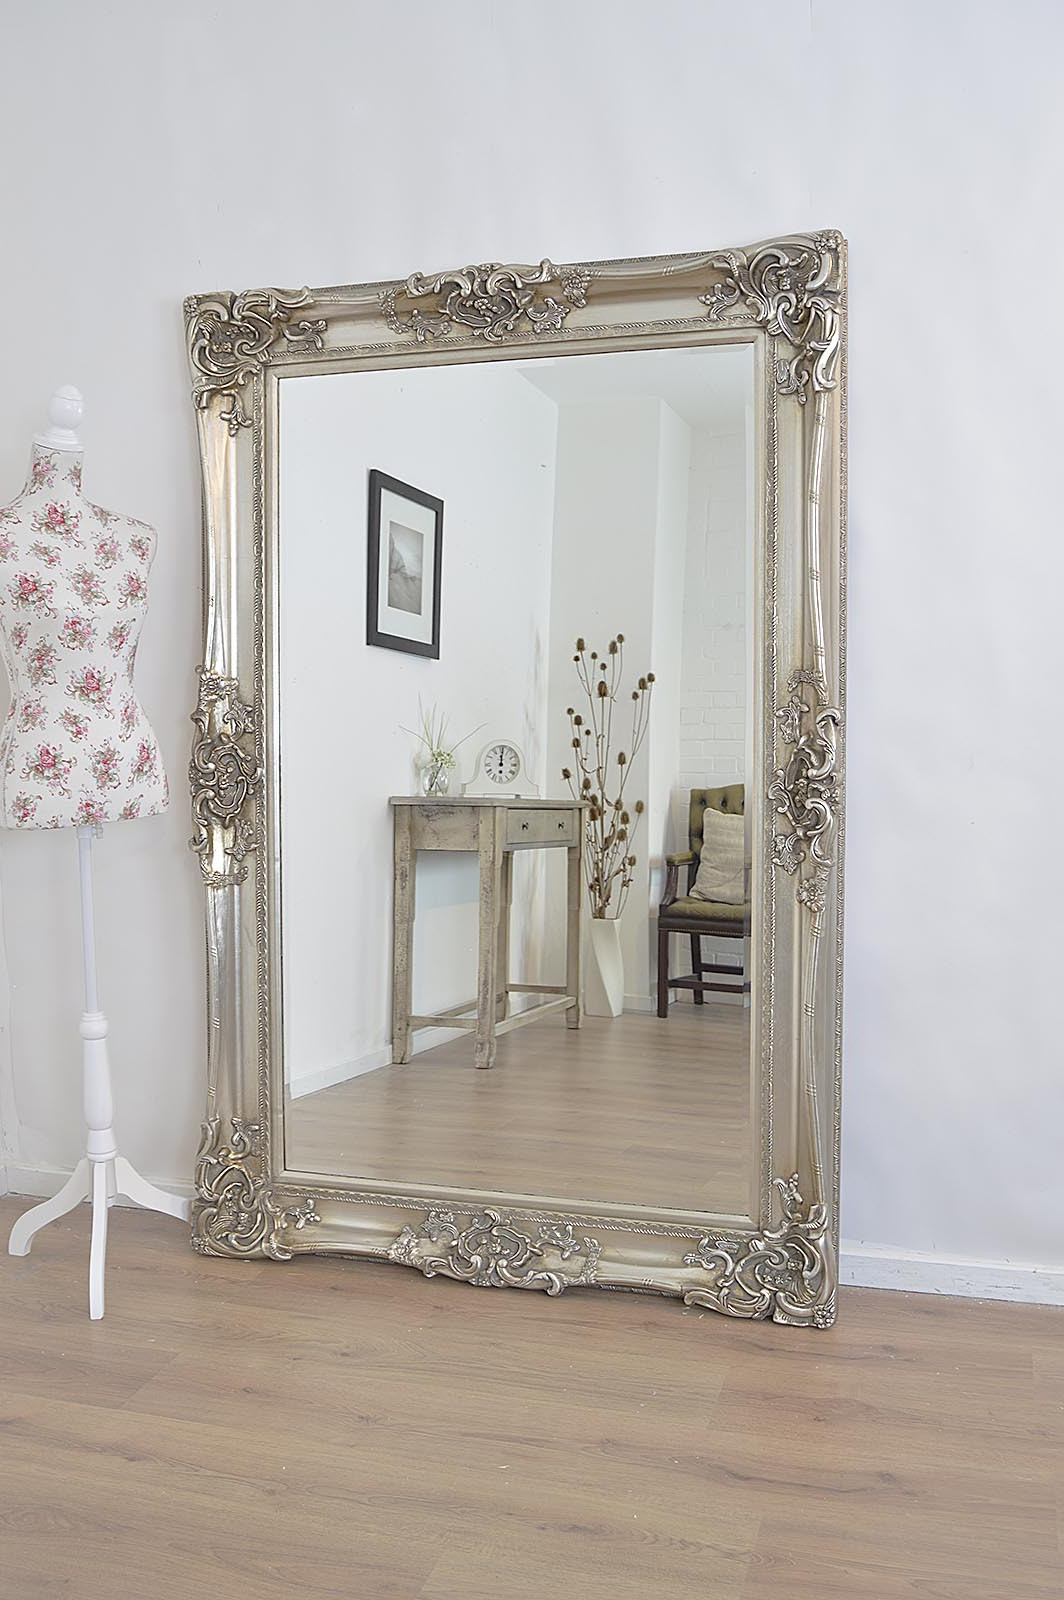 Antique Full Length Wall Mirrors Wood Framed Mirror Clip Art Regarding 2020 Antique Full Length Wall Mirrors (Gallery 2 of 20)